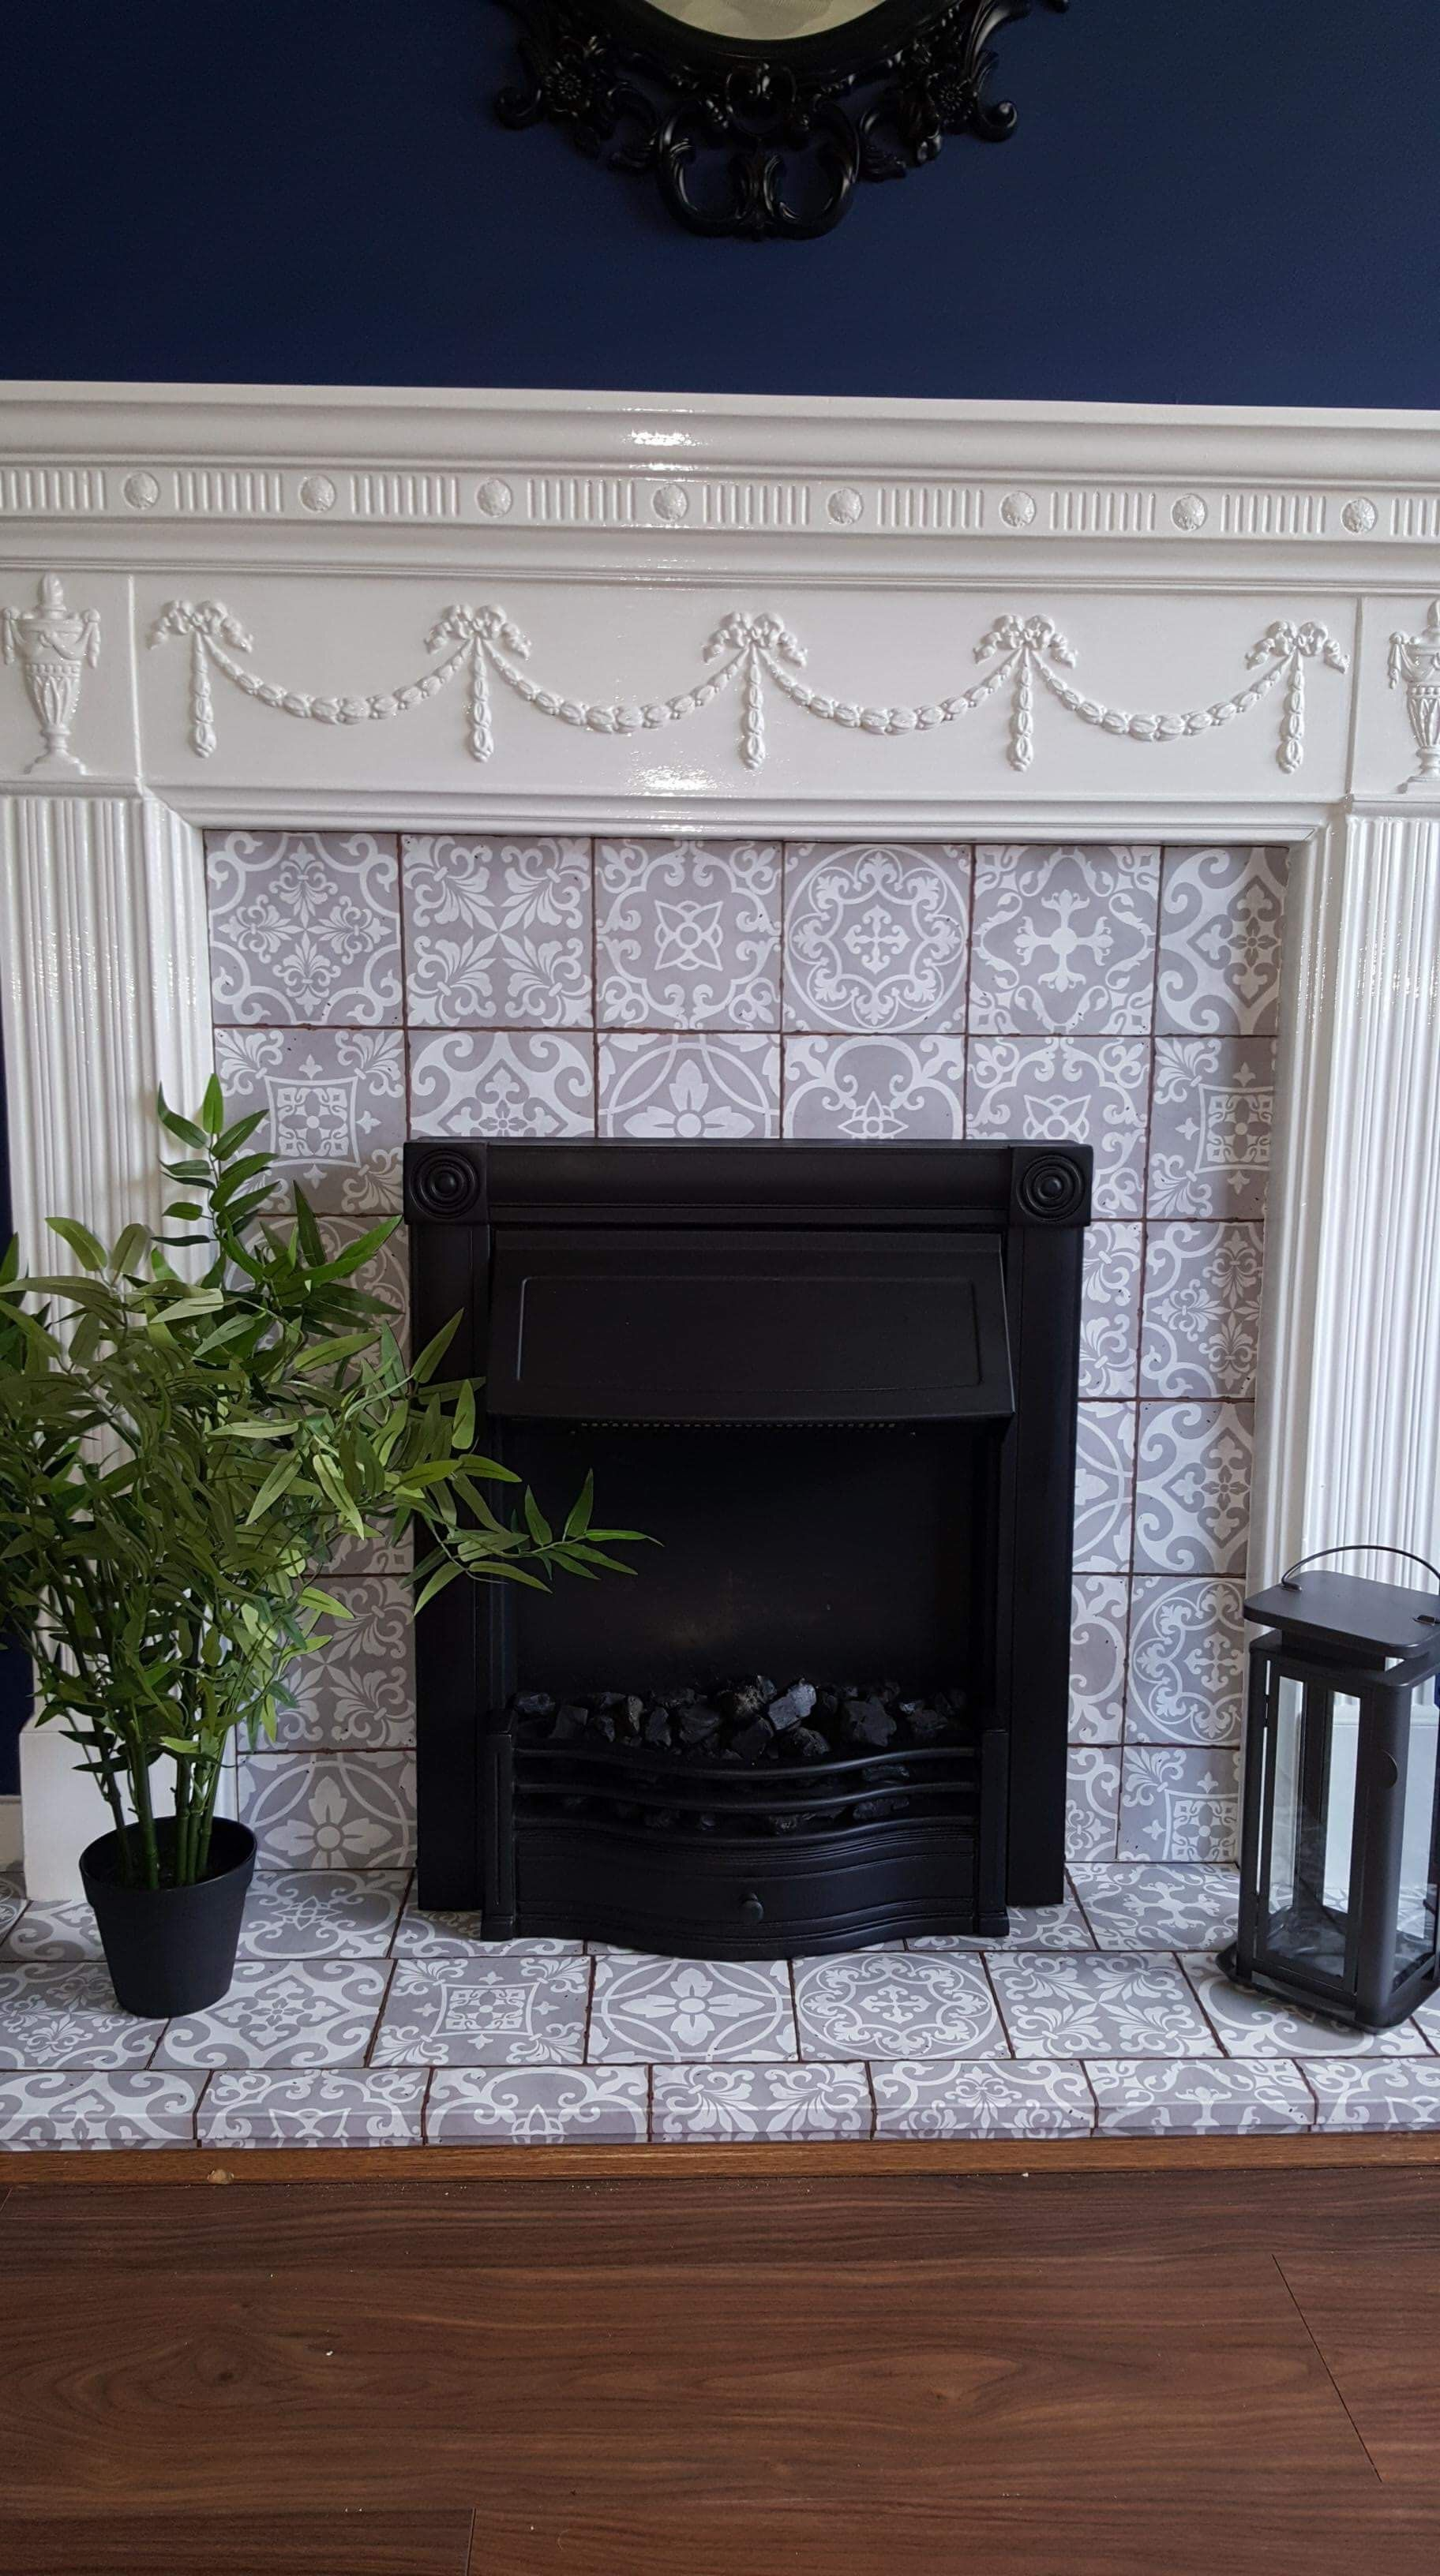 Our Fireplace When I Was Finished, Black Paint For Metal Fireplace Surround